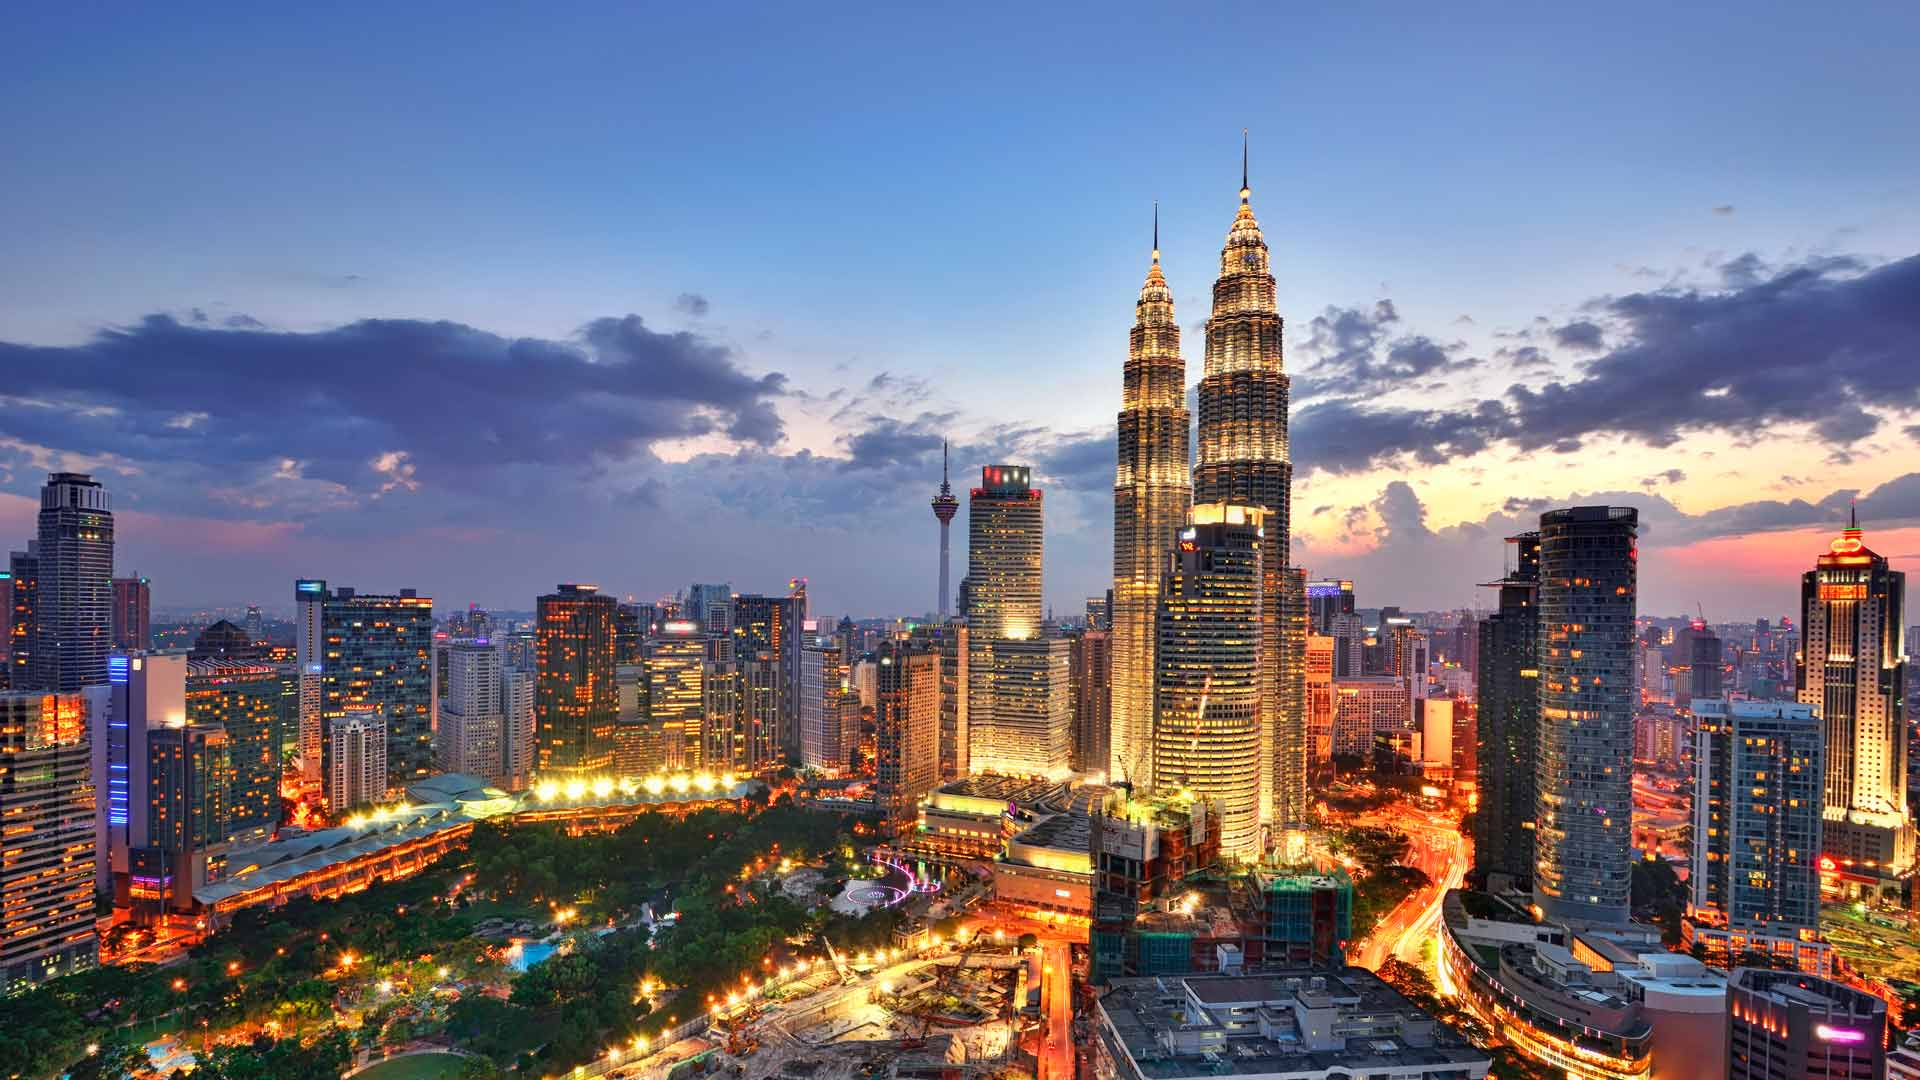 Explore Asia with Meteor Travel & Tours